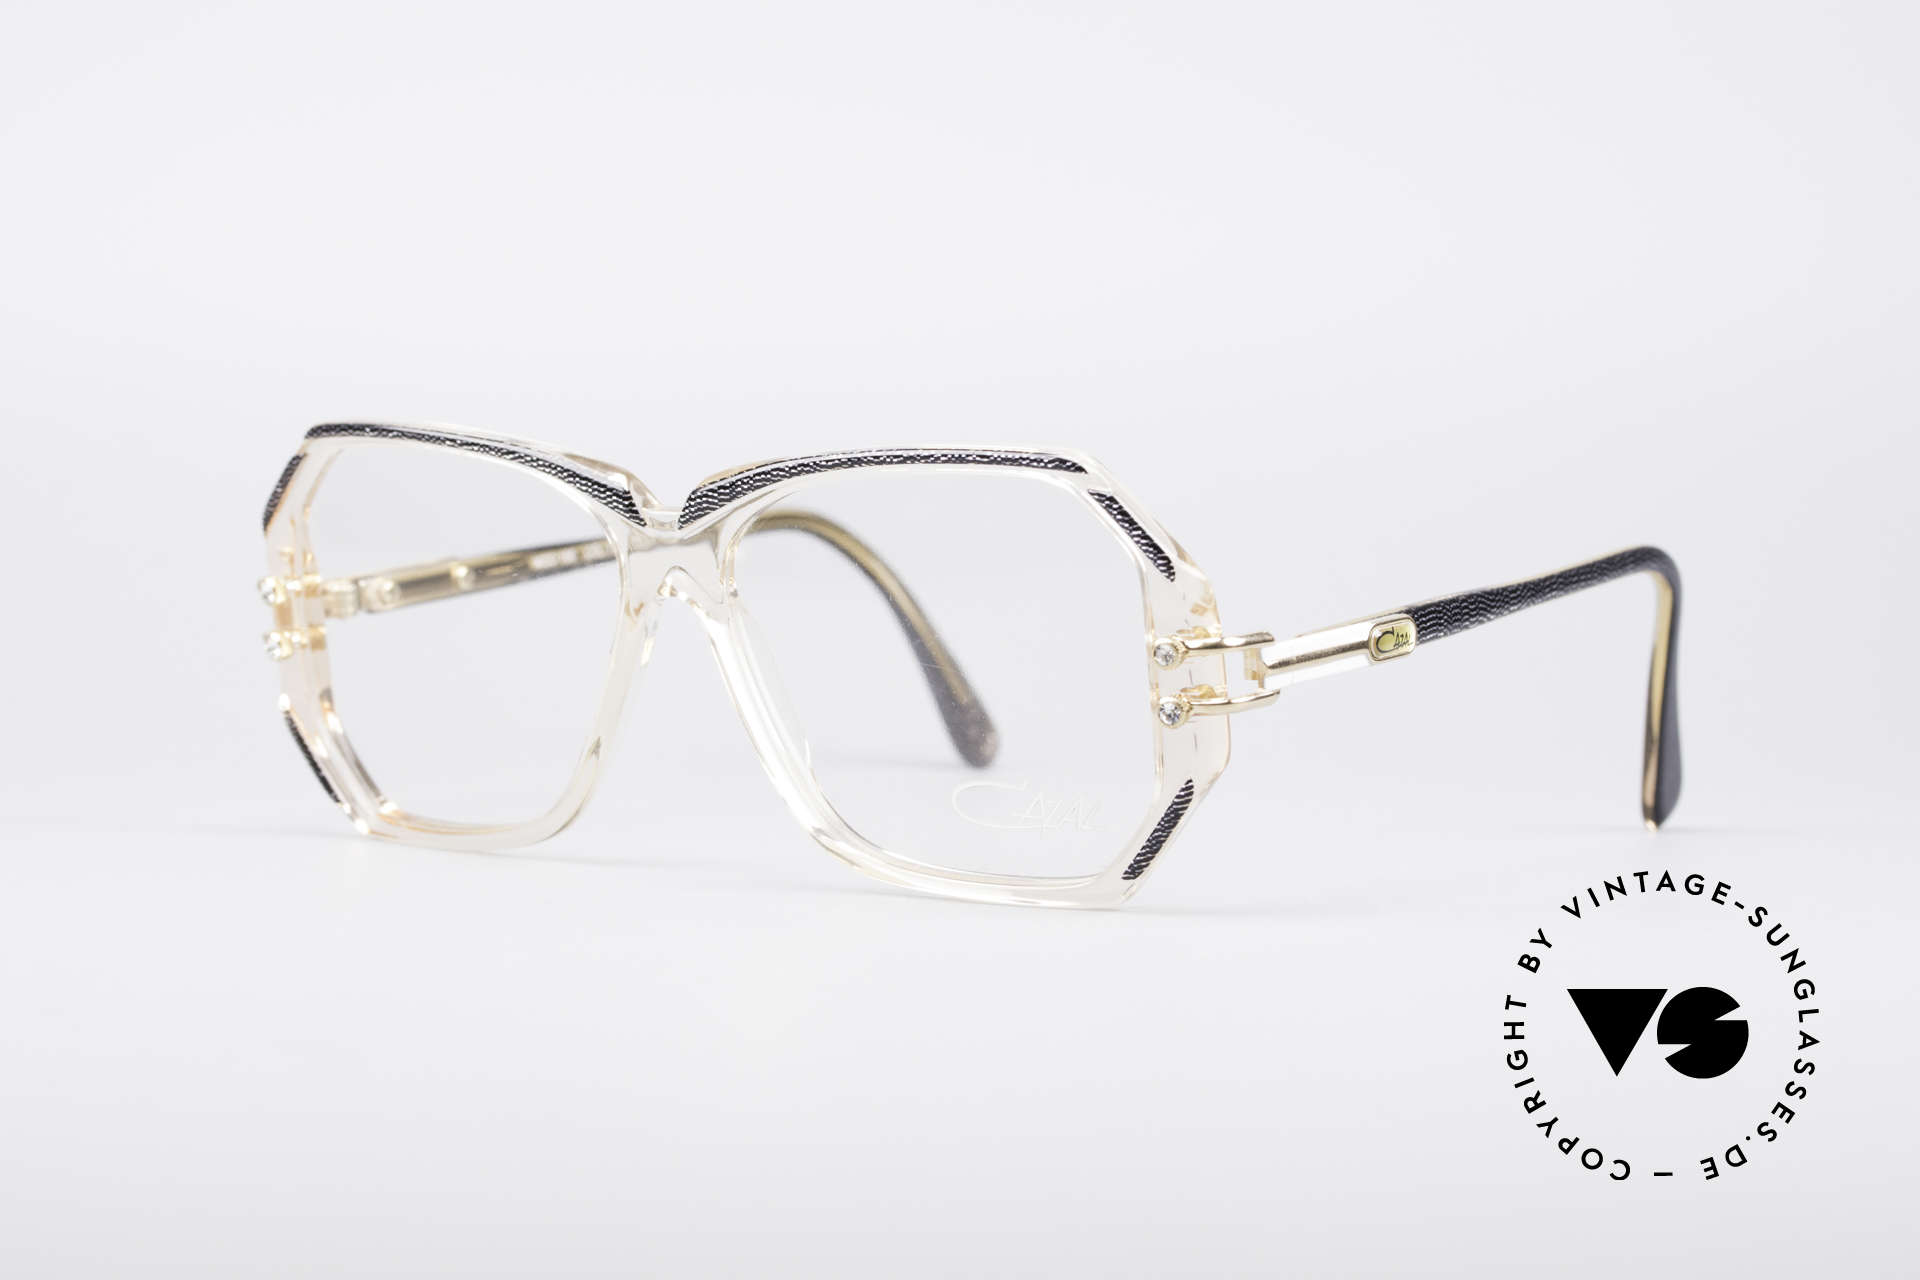 Cazal 169 Small Designer Frame, crystal clear frame with anthracite rims; SMALL size, Made for Women